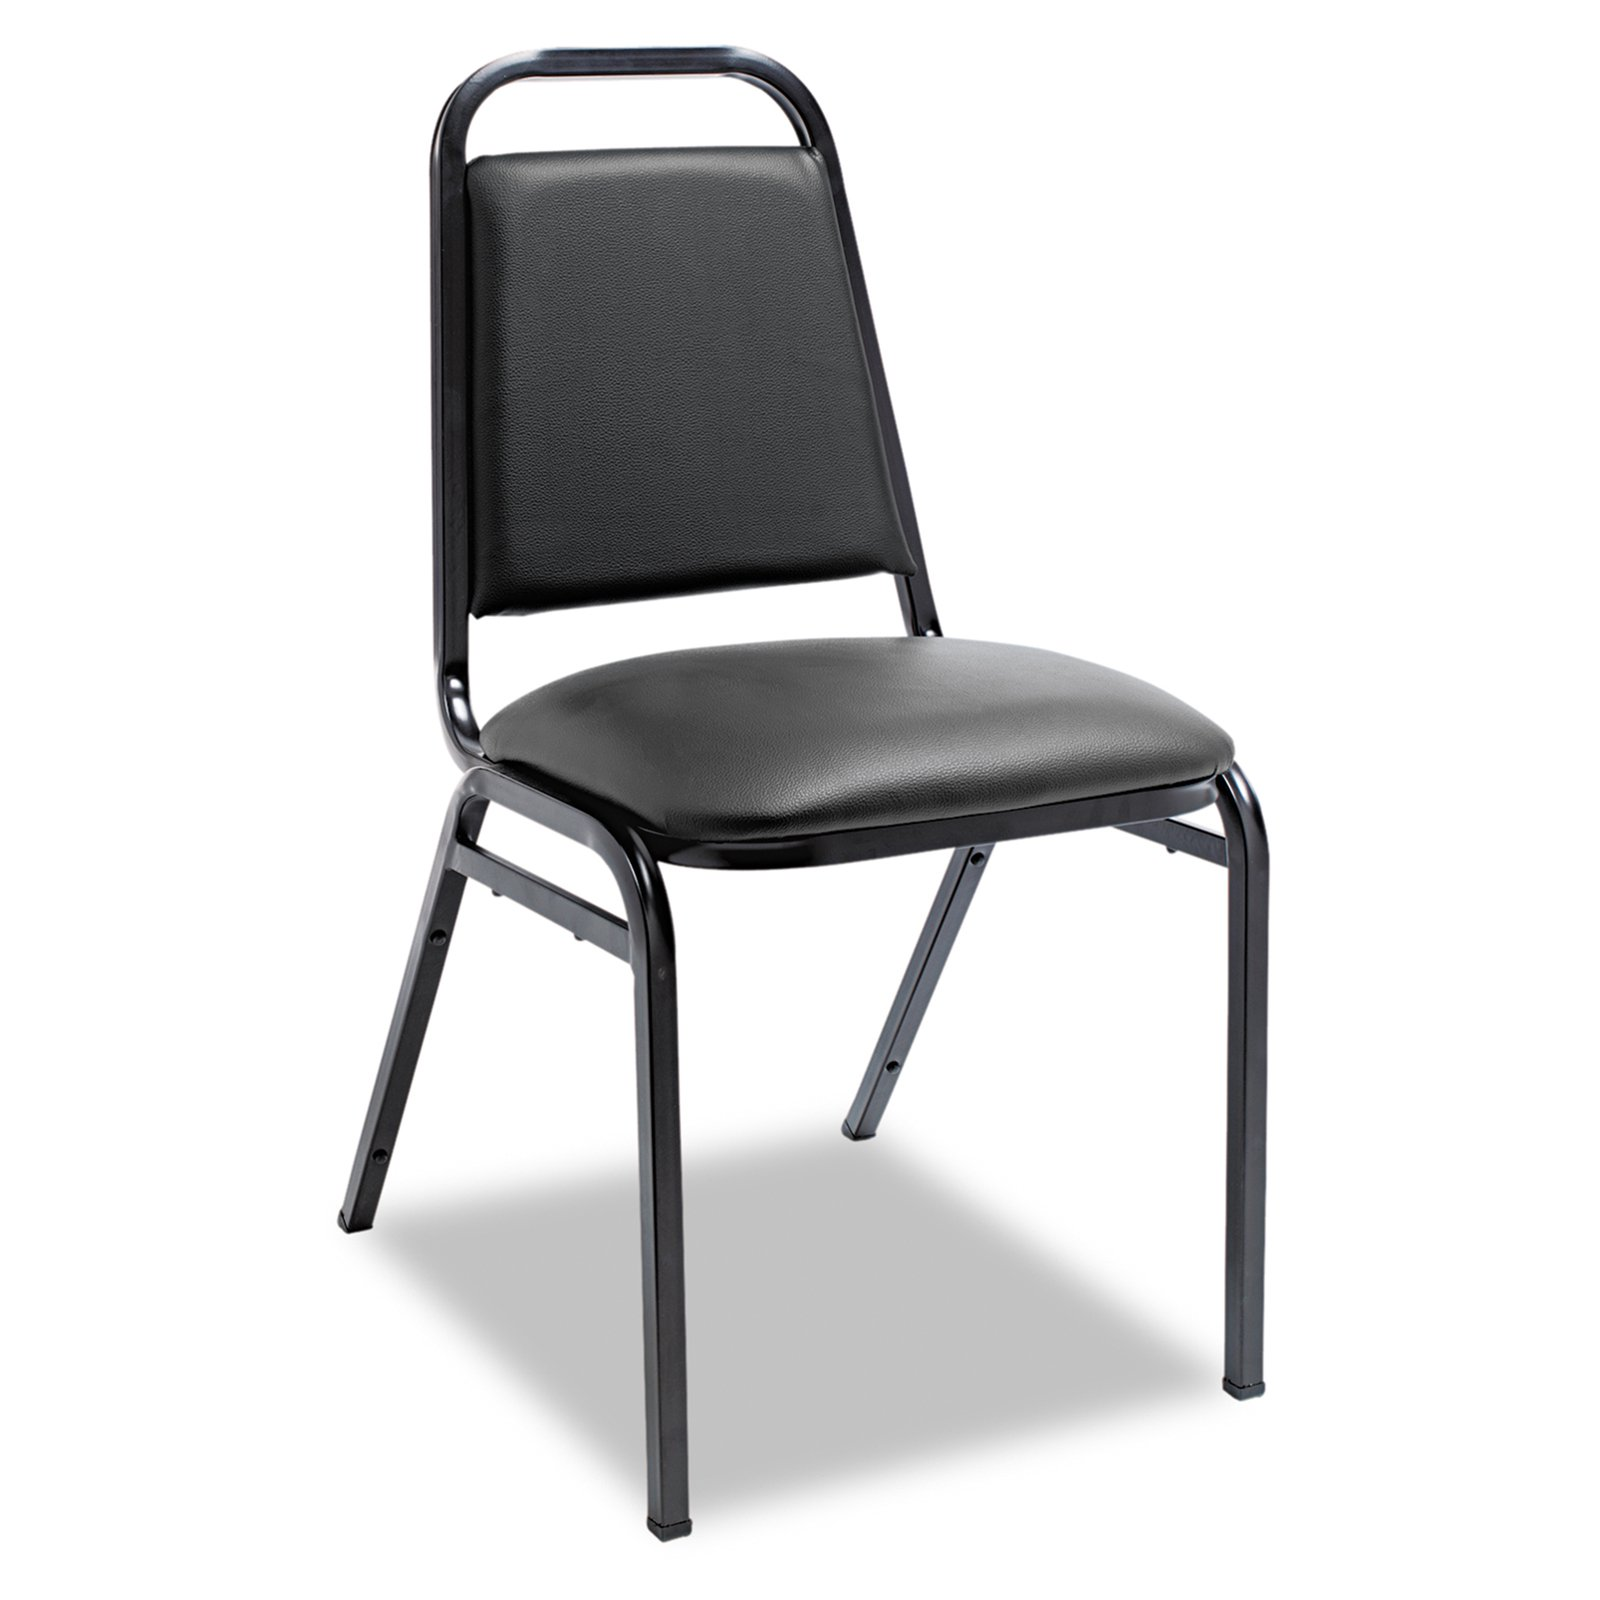 upholstered stacking chairs heavy duty chair casters alera w square back black vinyl frame